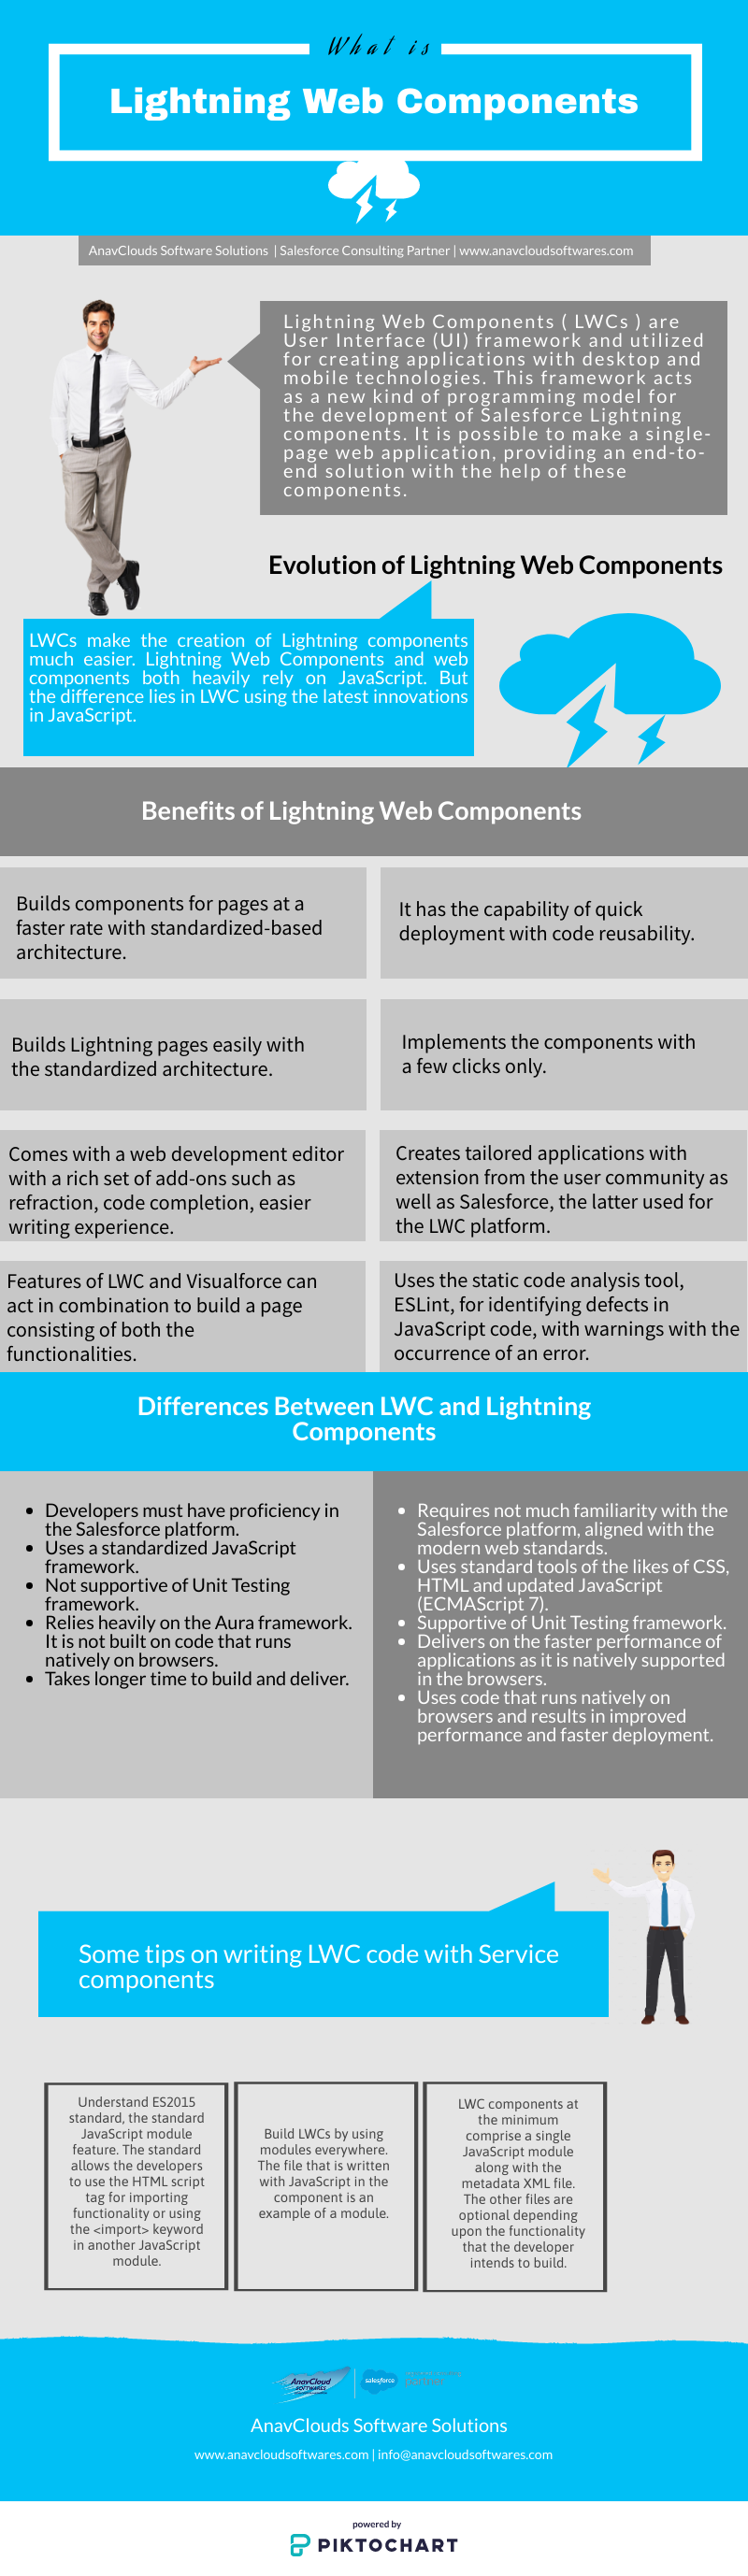 What are Salesforce Lightning Web Components?